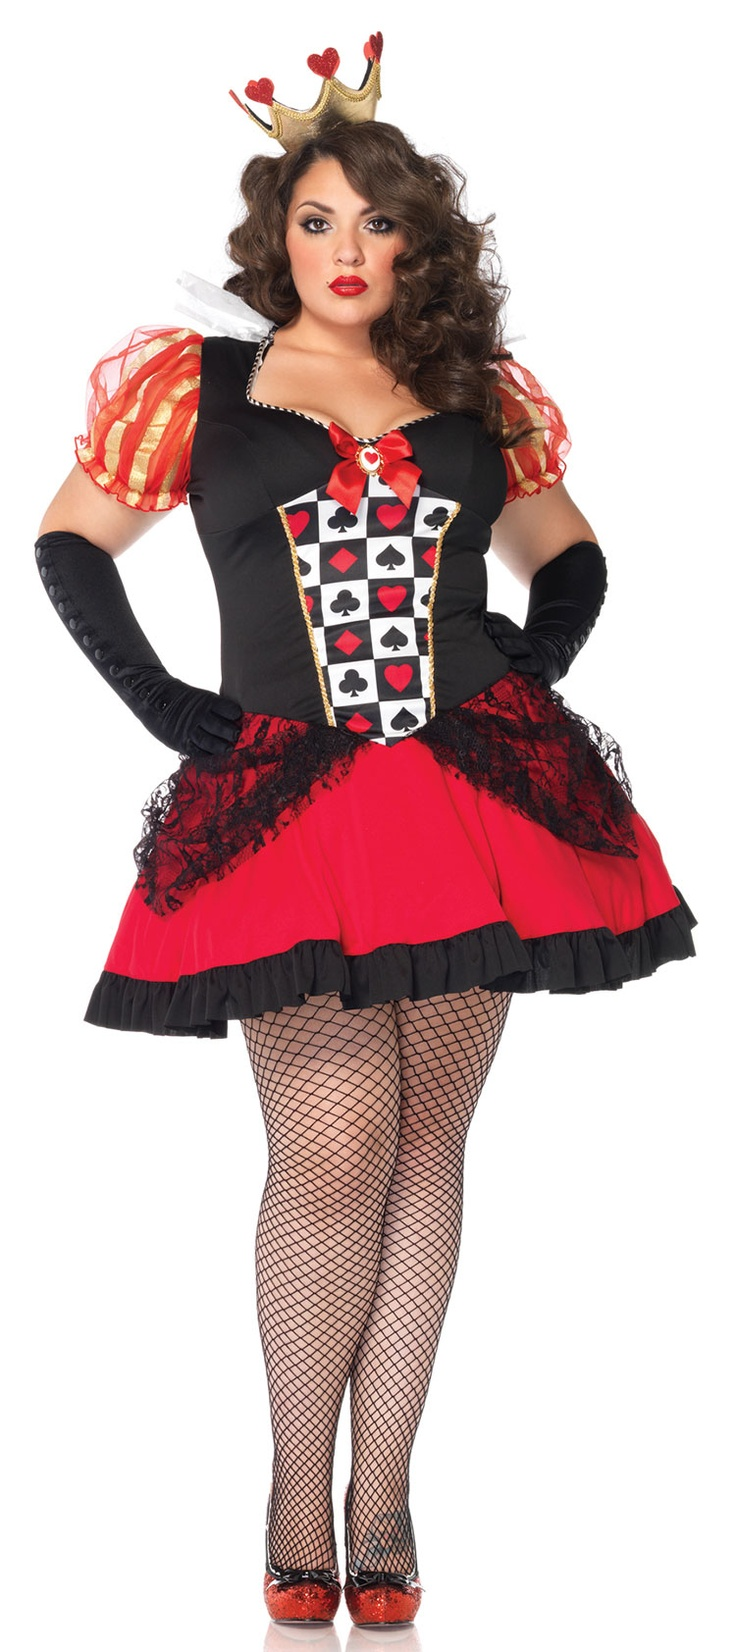 queen of hearts plus size costume - page 3 of 4 - curvyoutfits